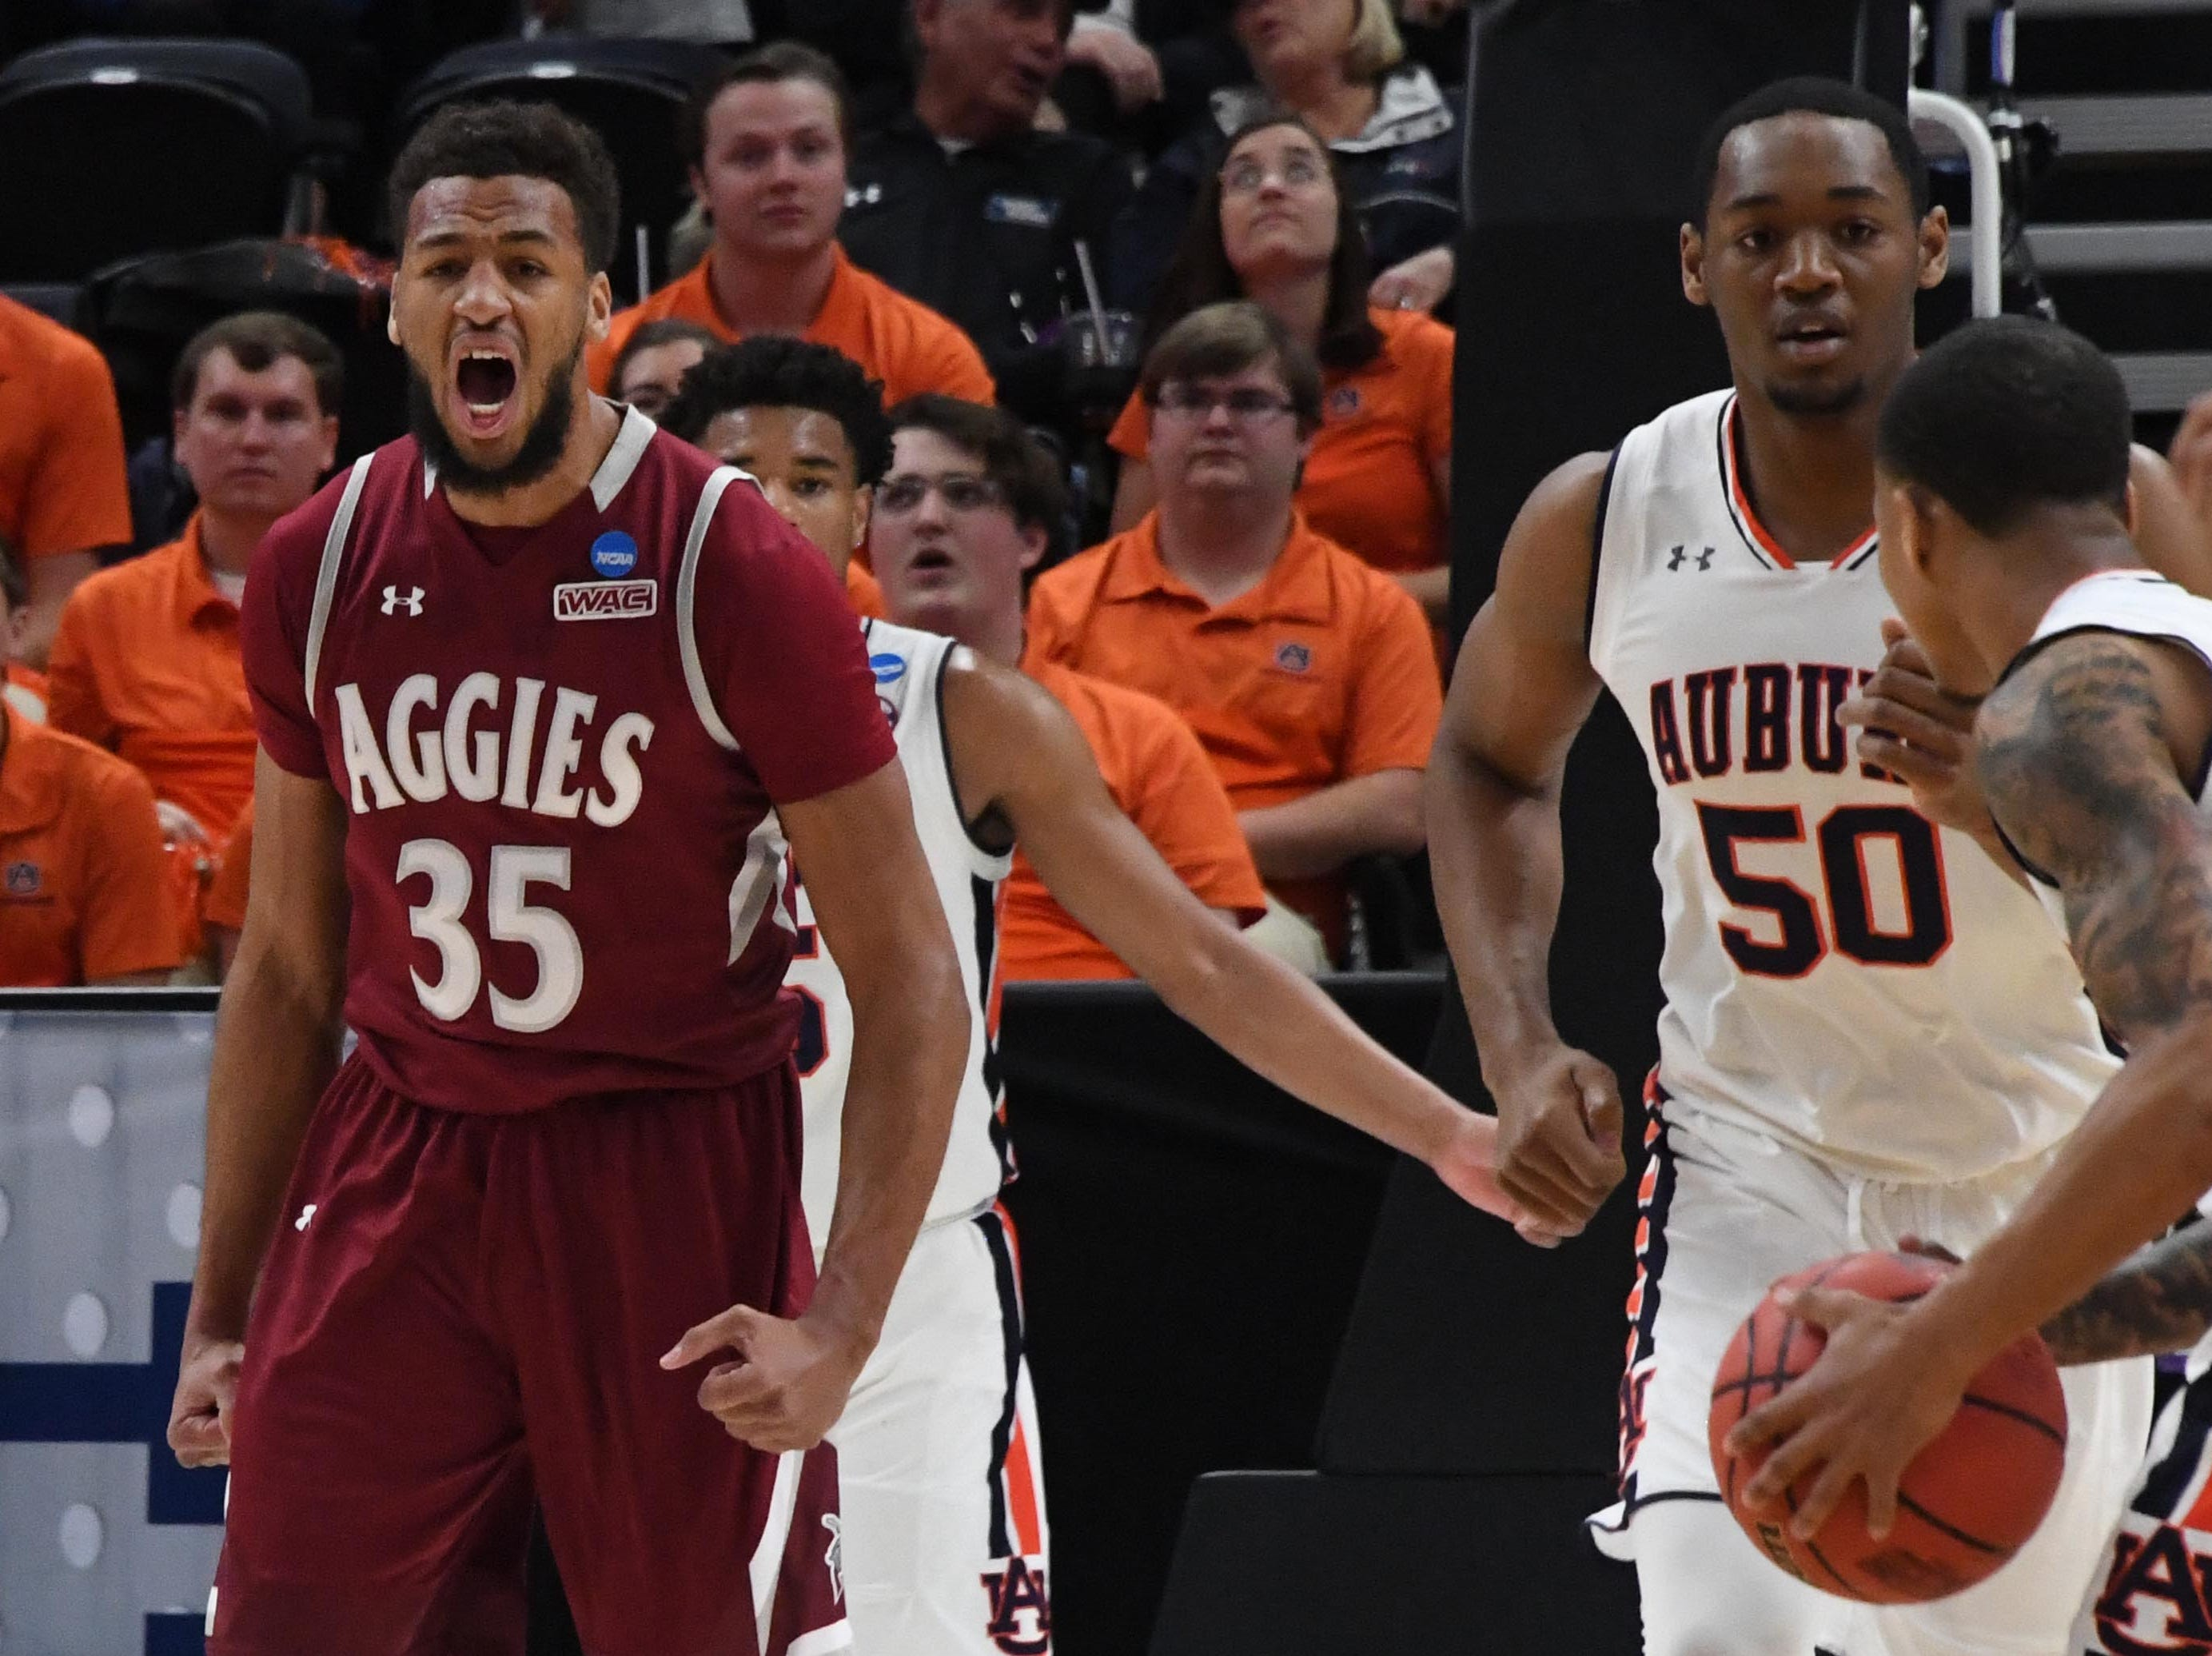 Mar 21, 2019; Salt Lake City, UT, USA; New Mexico State Aggies forward Johnny McCants (35) reacts during the first half in the first round of the 2019 NCAA Tournament against the Auburn Tigers at Vivint Smart Home Arena. Mandatory Credit: Kirby Lee-USA TODAY Sports